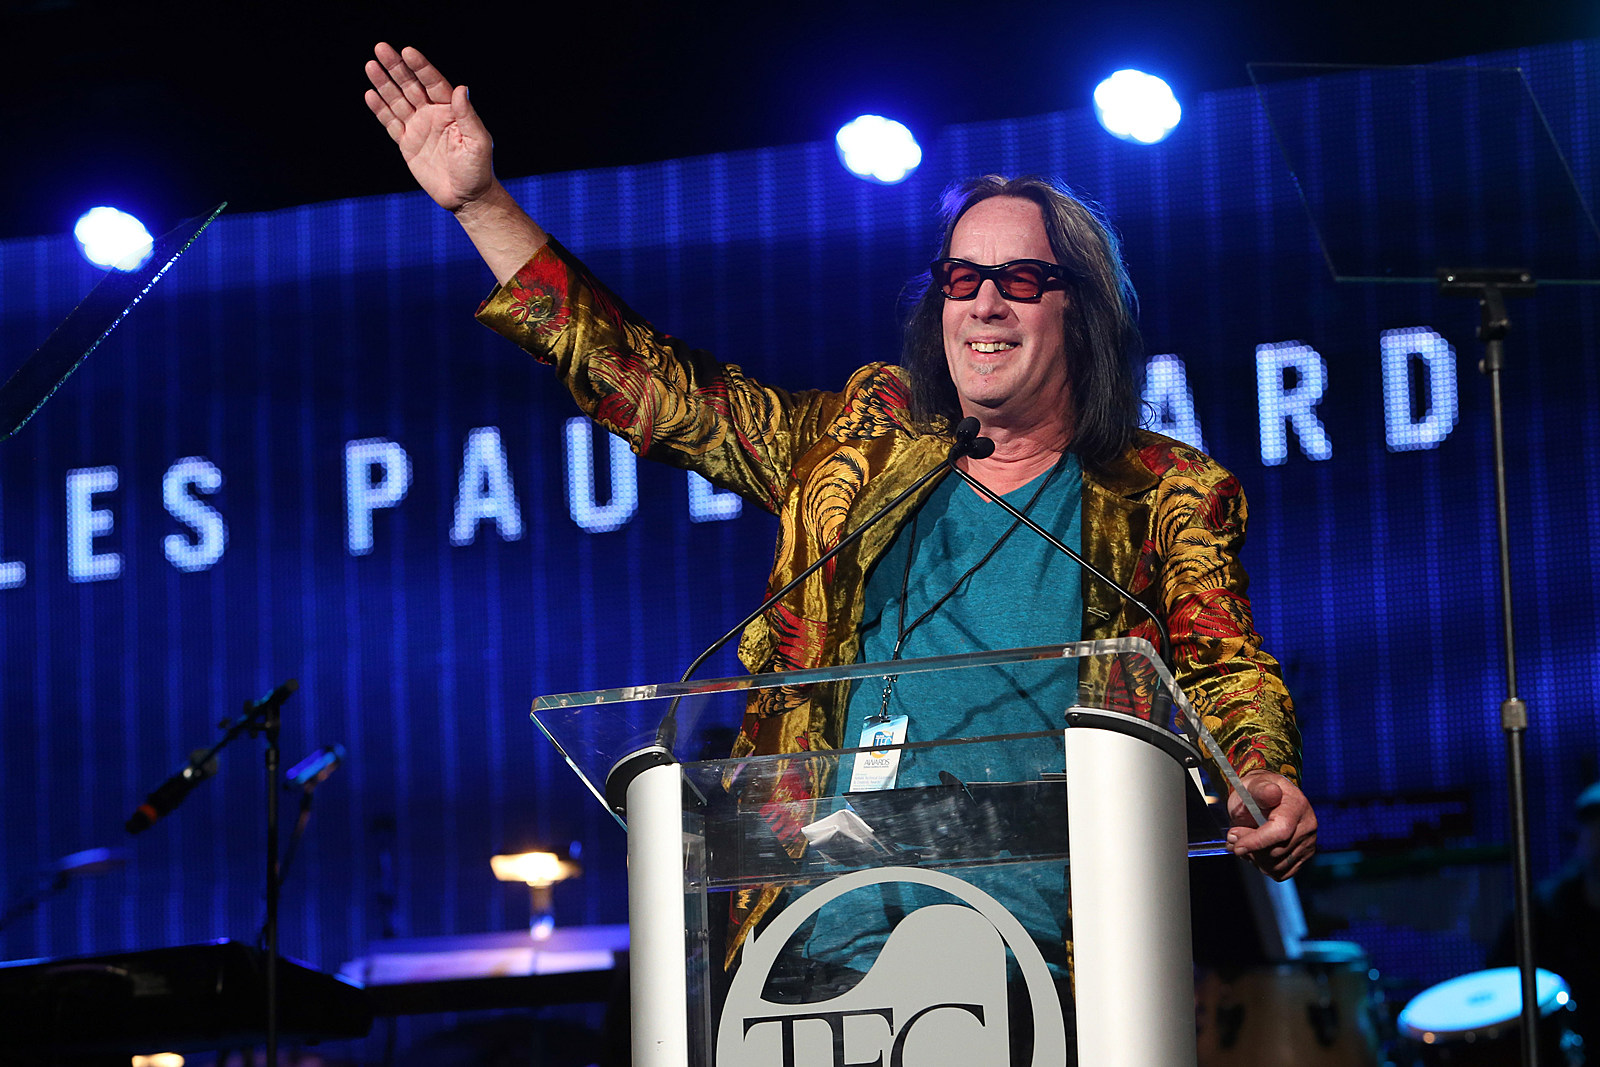 Todd Rundgren on Rock Hall: 'I Have Offered to do Something Live'